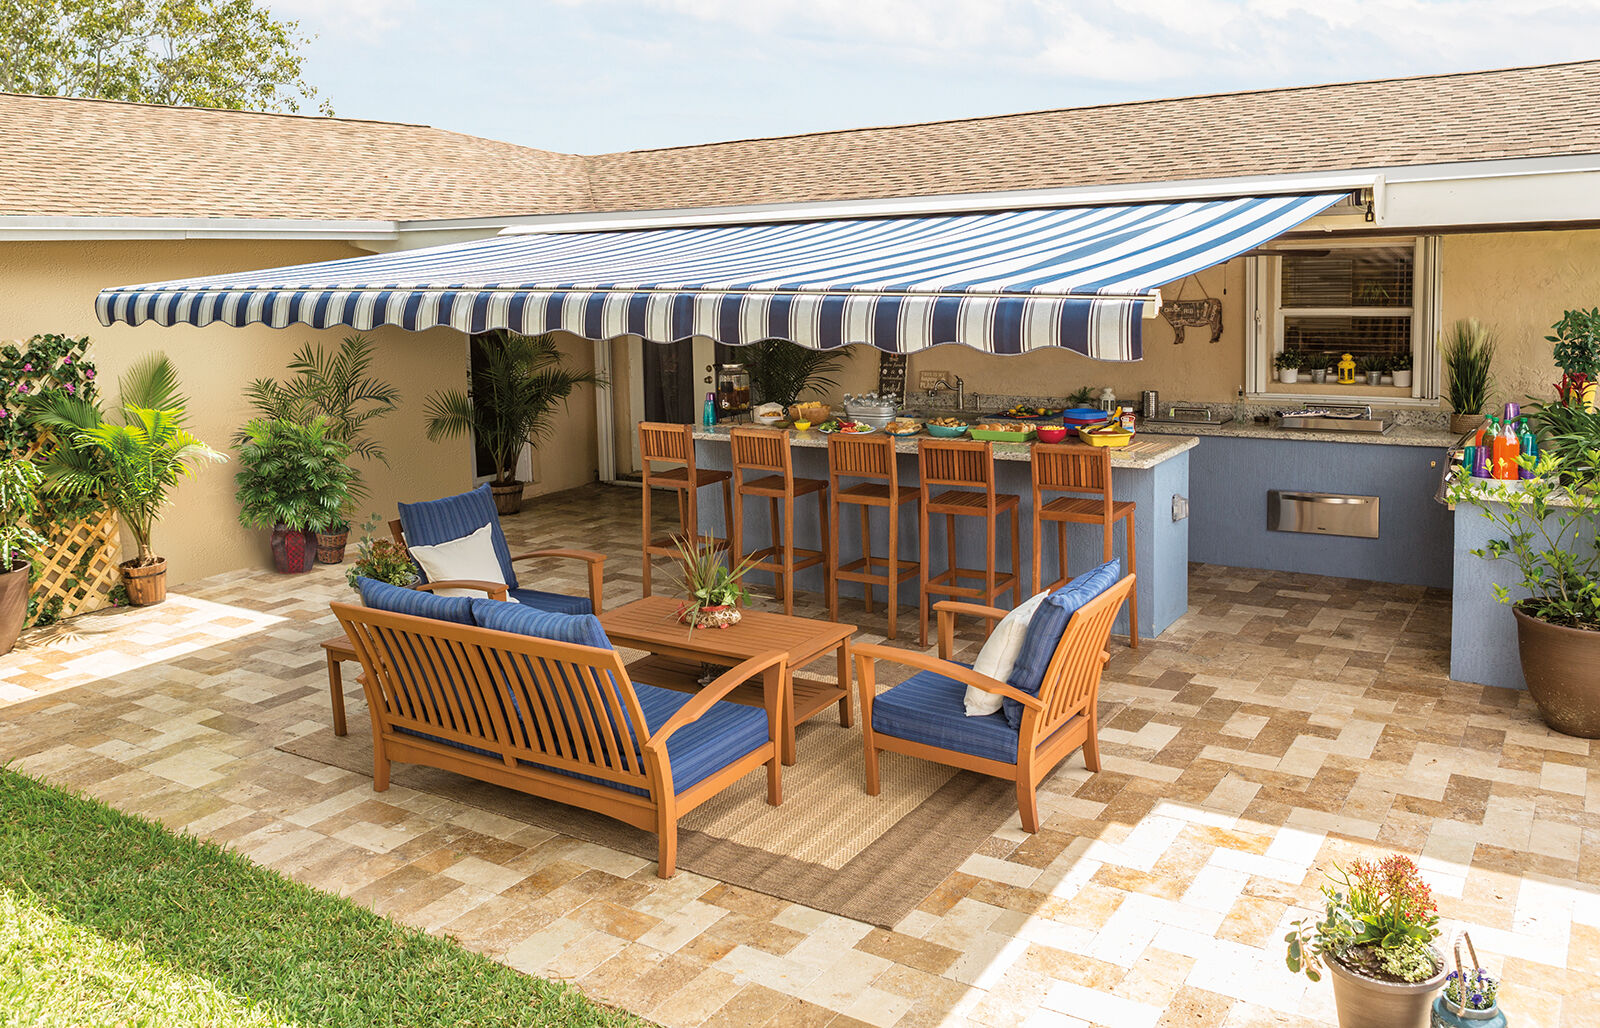 Sunsetter Motorized Retractable Awning 16 X 10 Ft